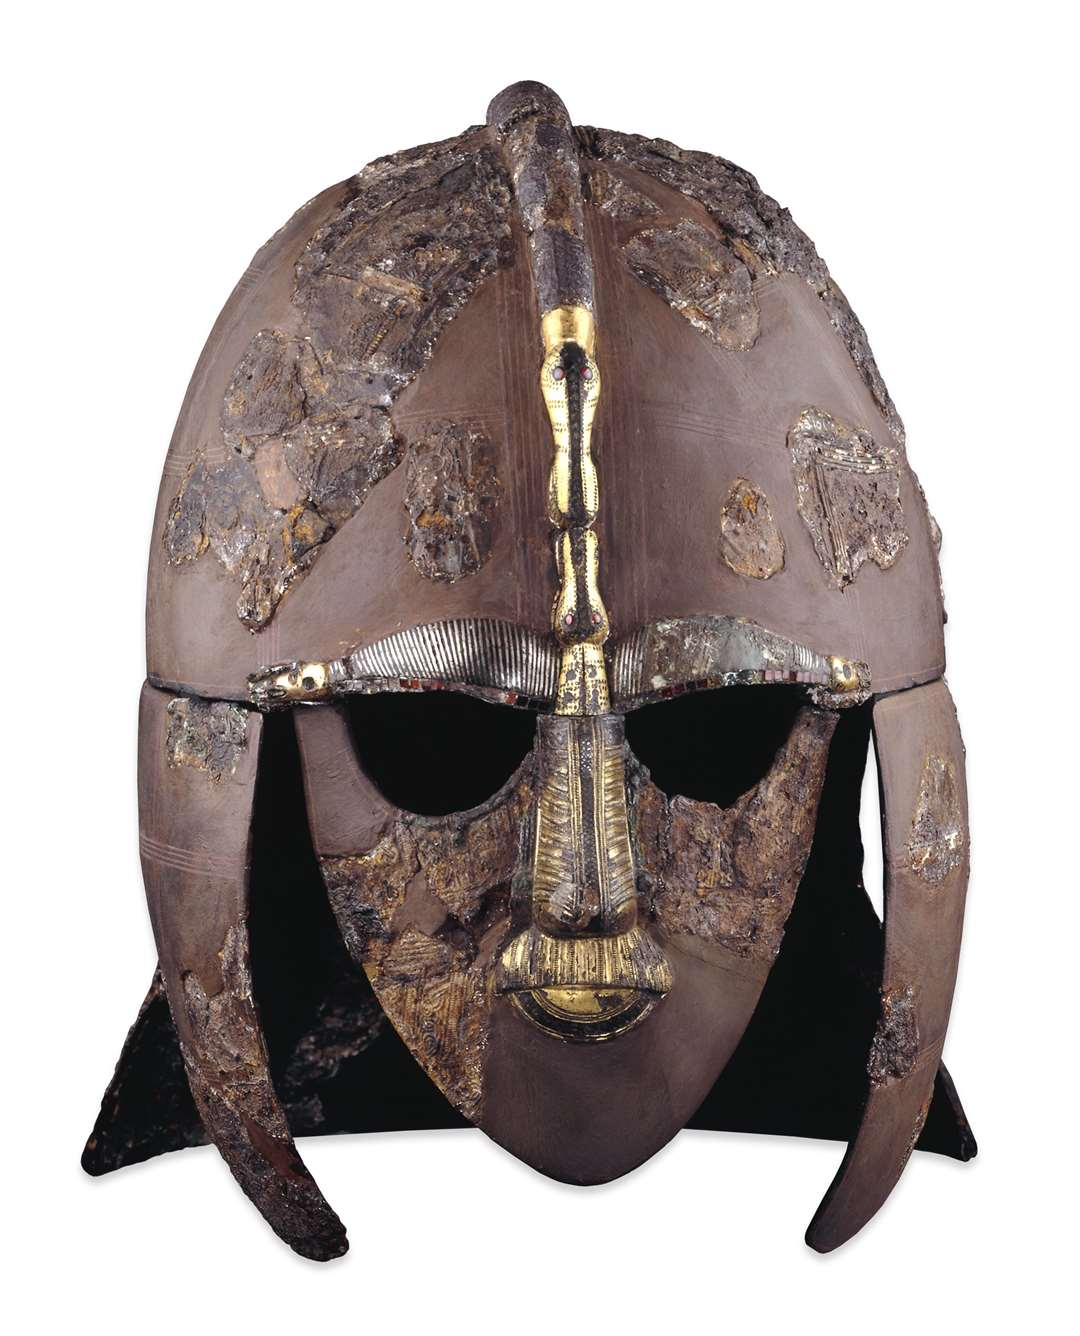 The reconstructed helmet that has become the most iconic image of Sutton Hoo. Picture:British Museum